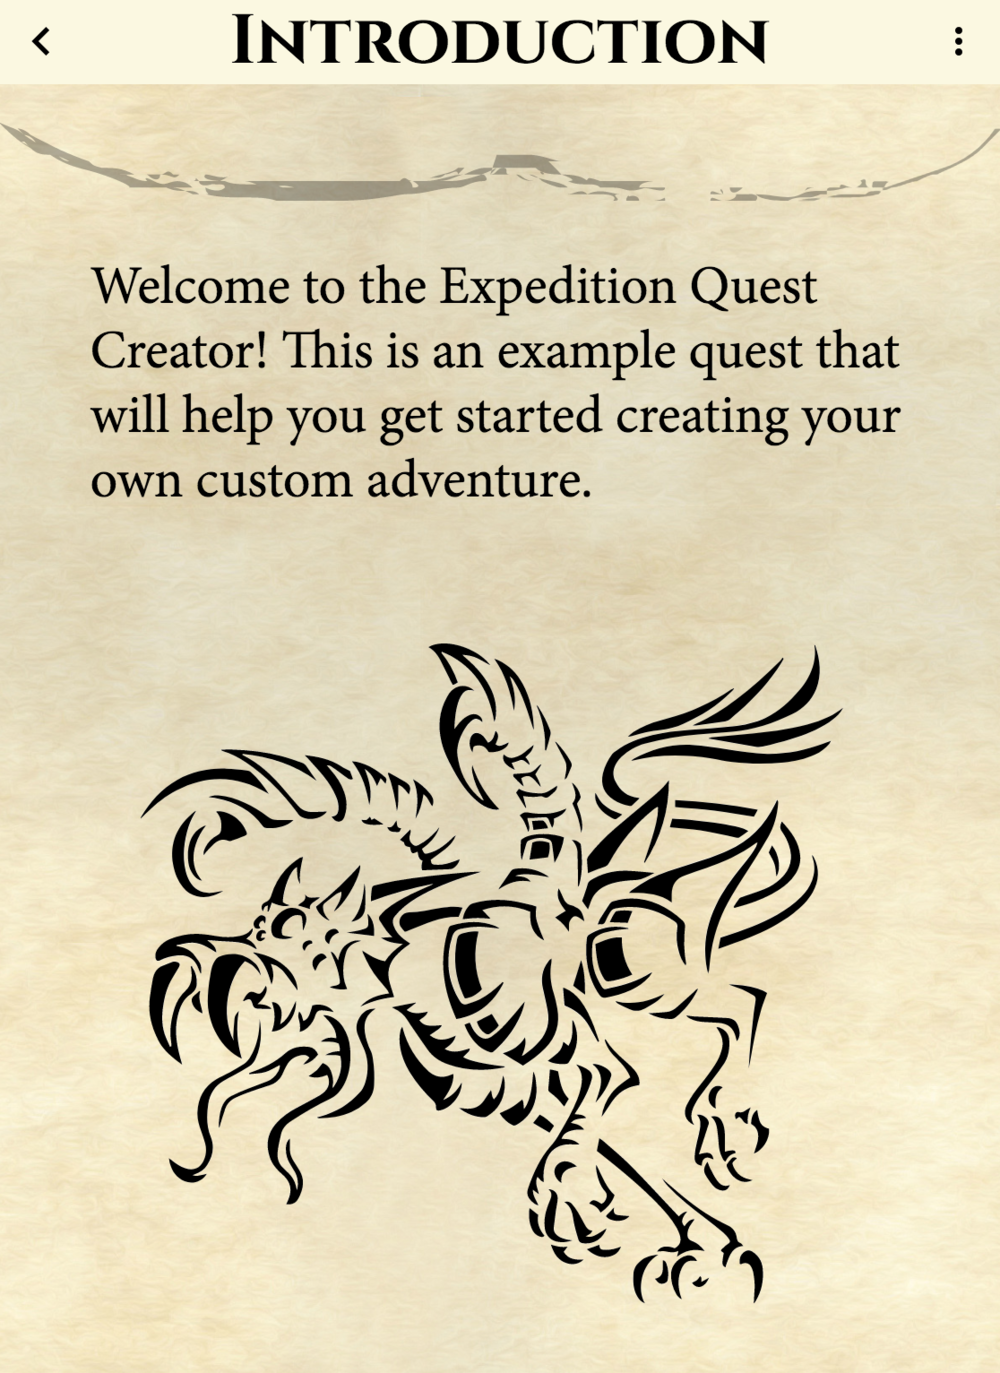 expedition-app-full-screen-art.jpg